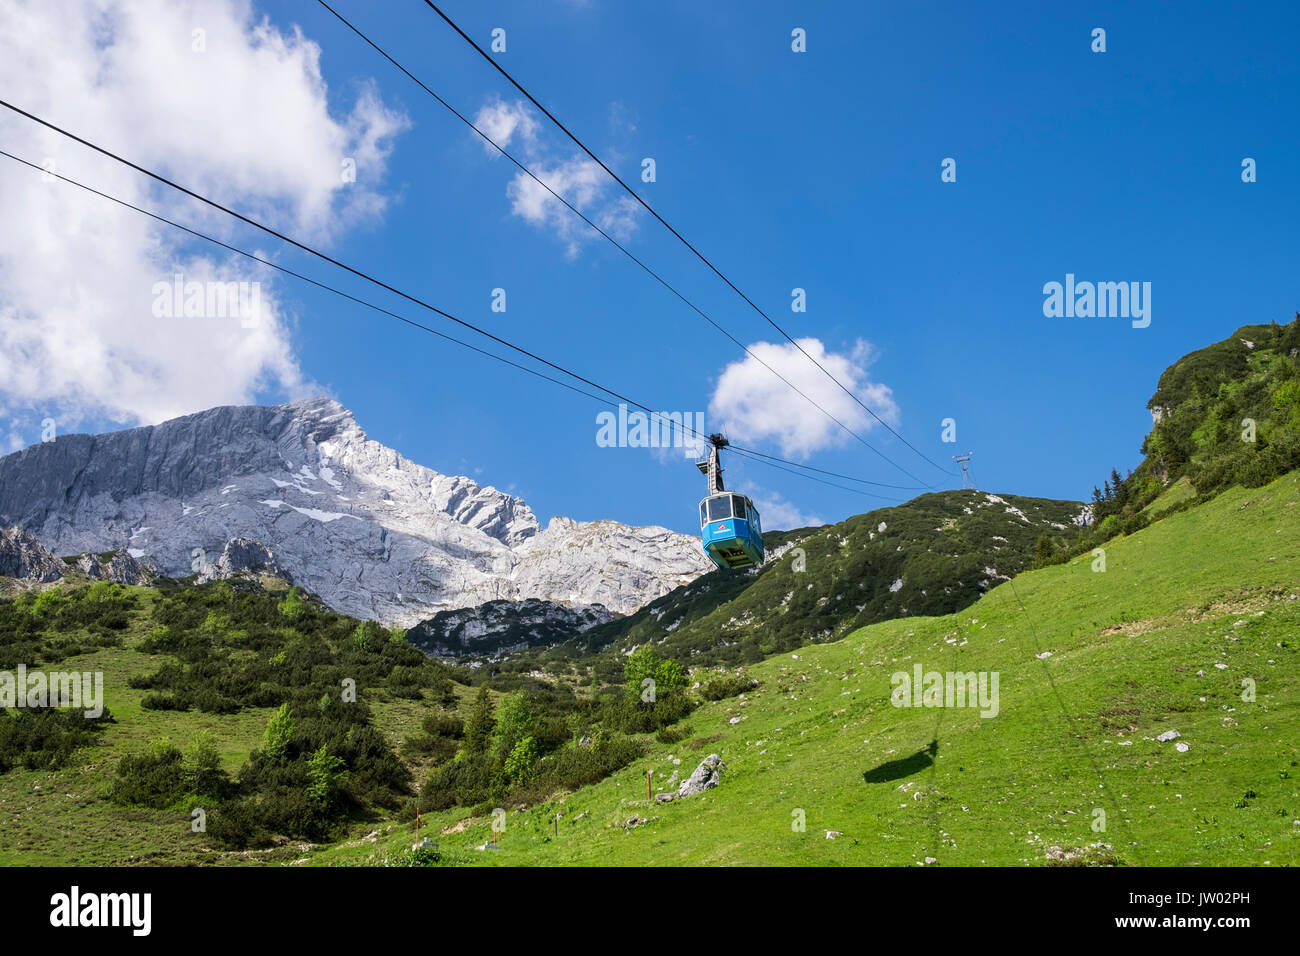 Hochalmbahn cable car cabin coming down the mountain, Hochalm, Kreuzeck, Zugspitzland, Bavaria, Germany Stock Photo